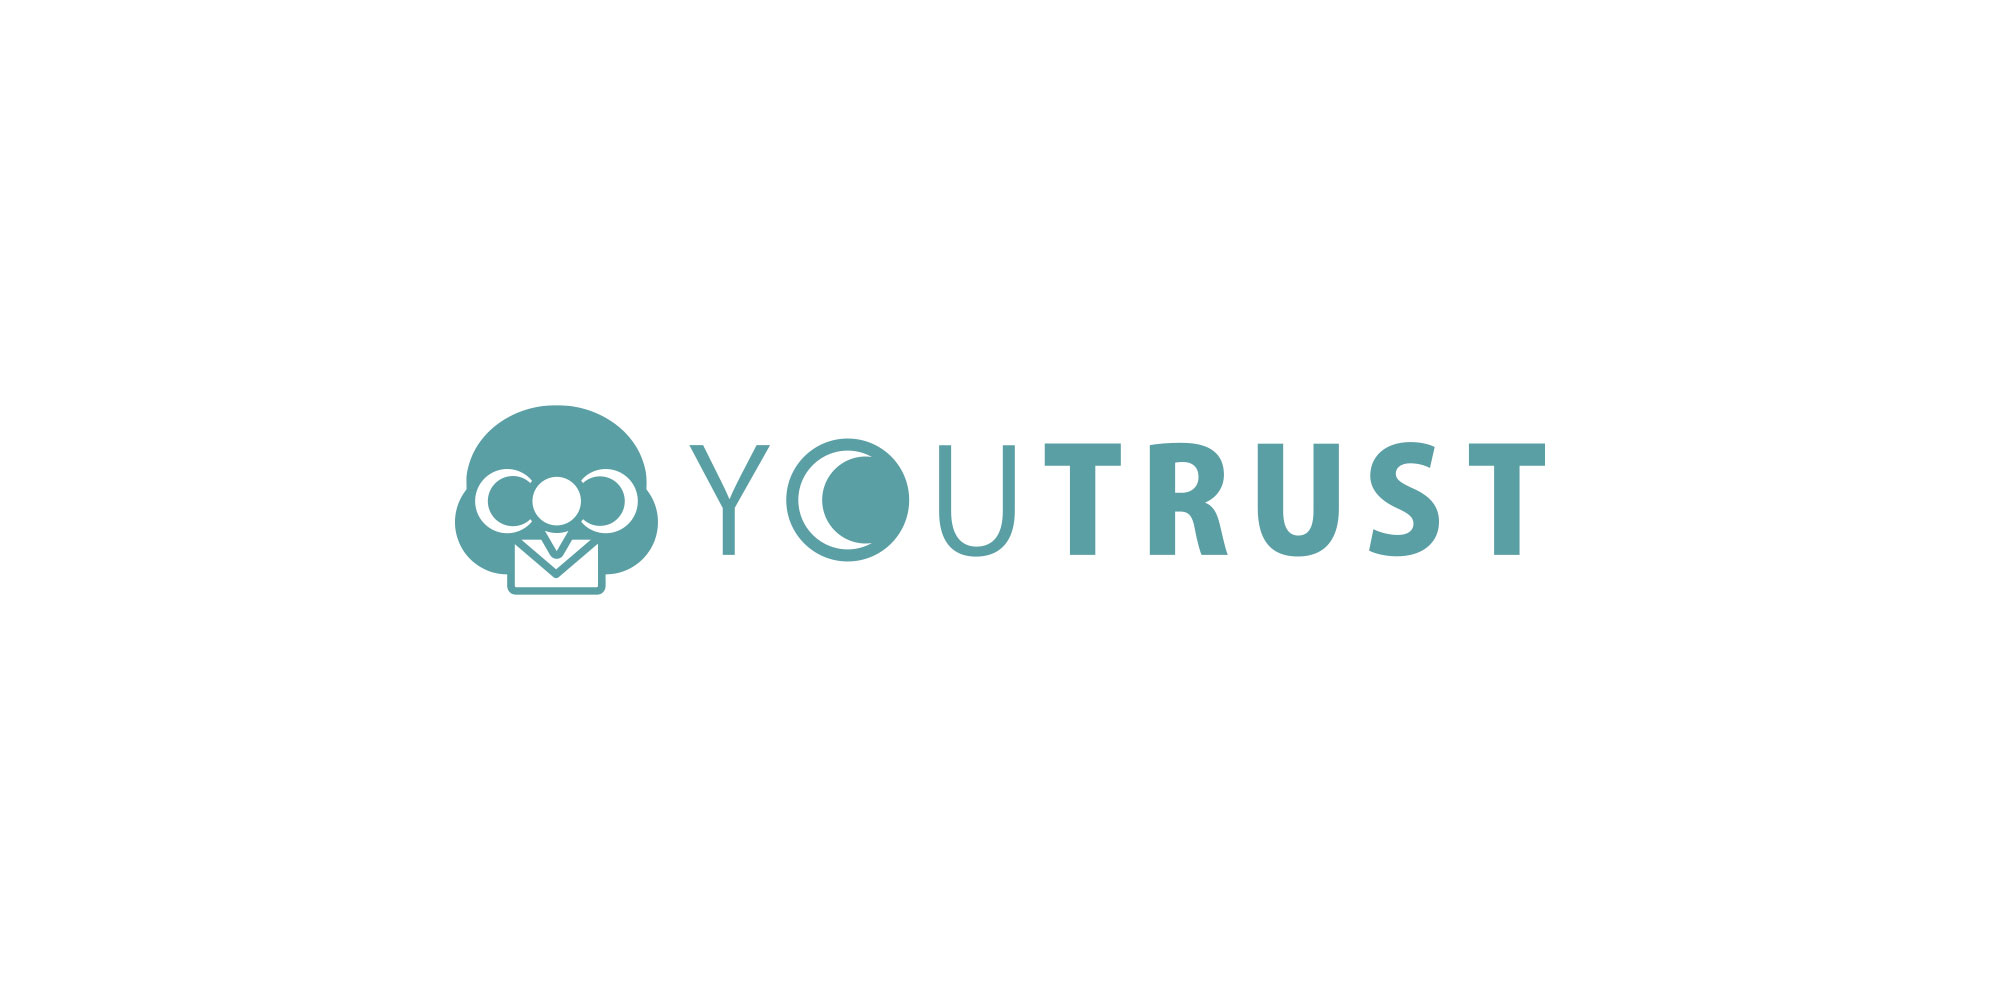 youtrust_logo_type3